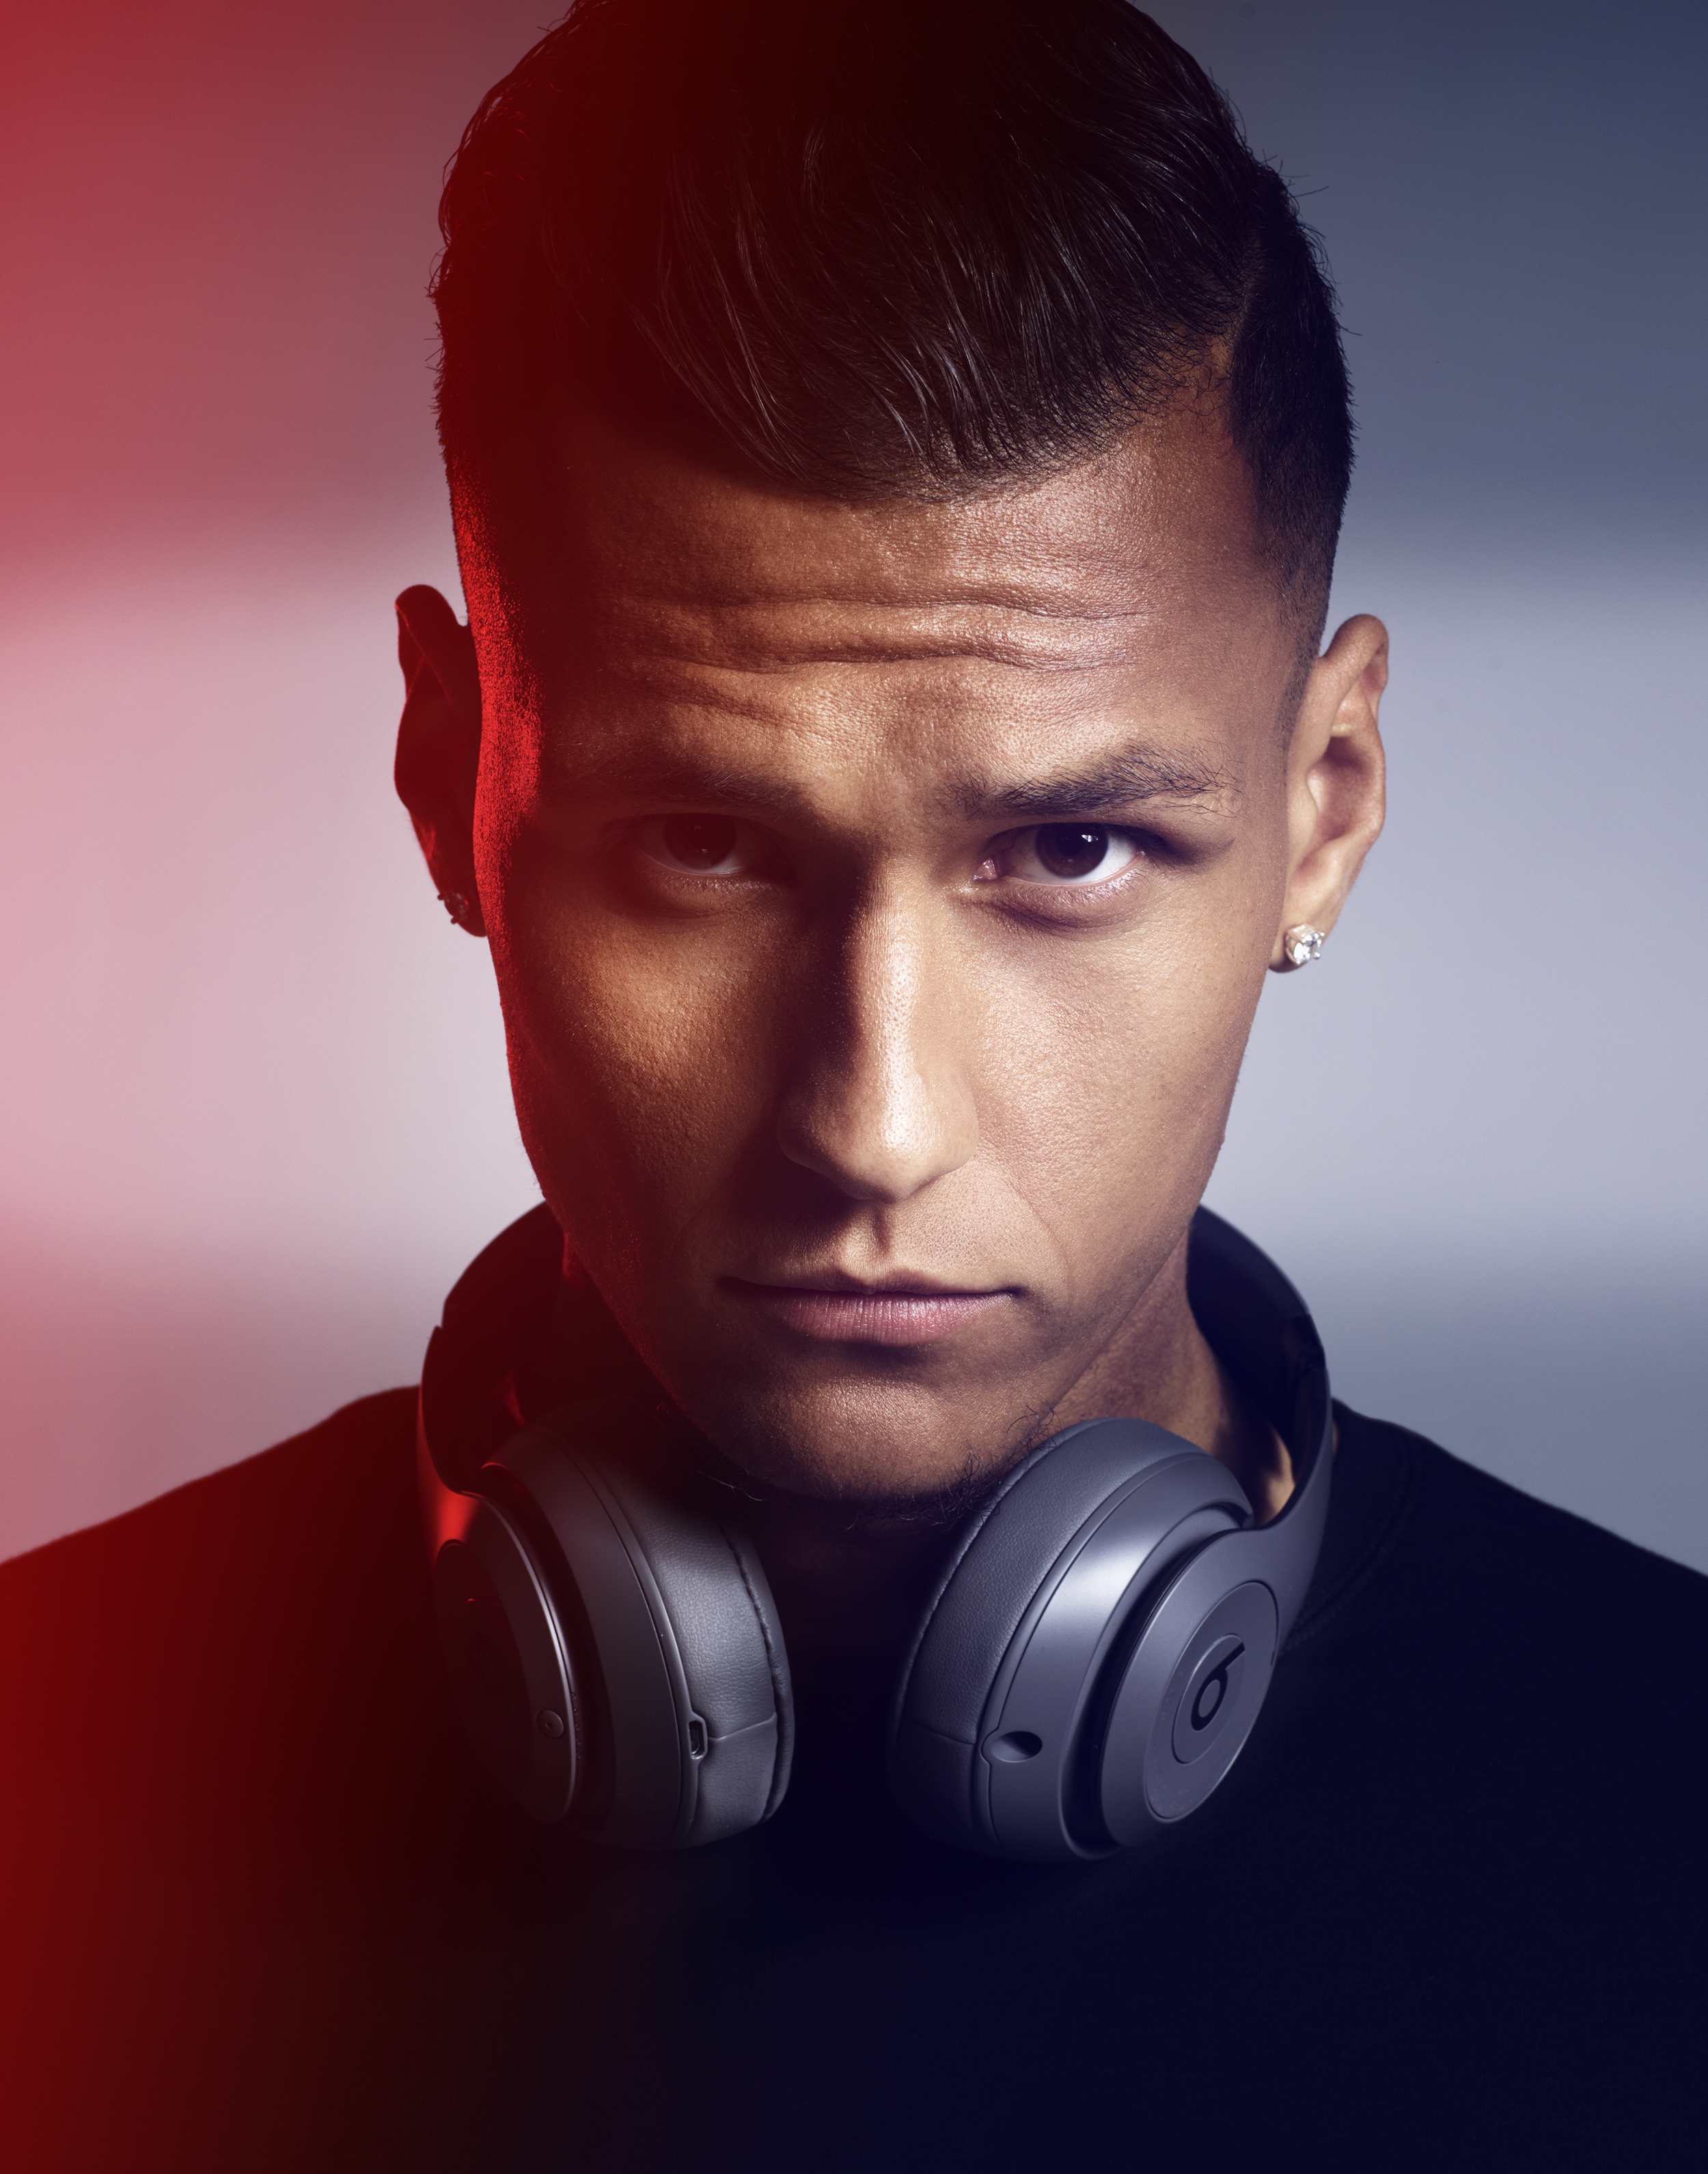 Davie-Selke-Beats-Headphones-by-Robert-Ascroft-02